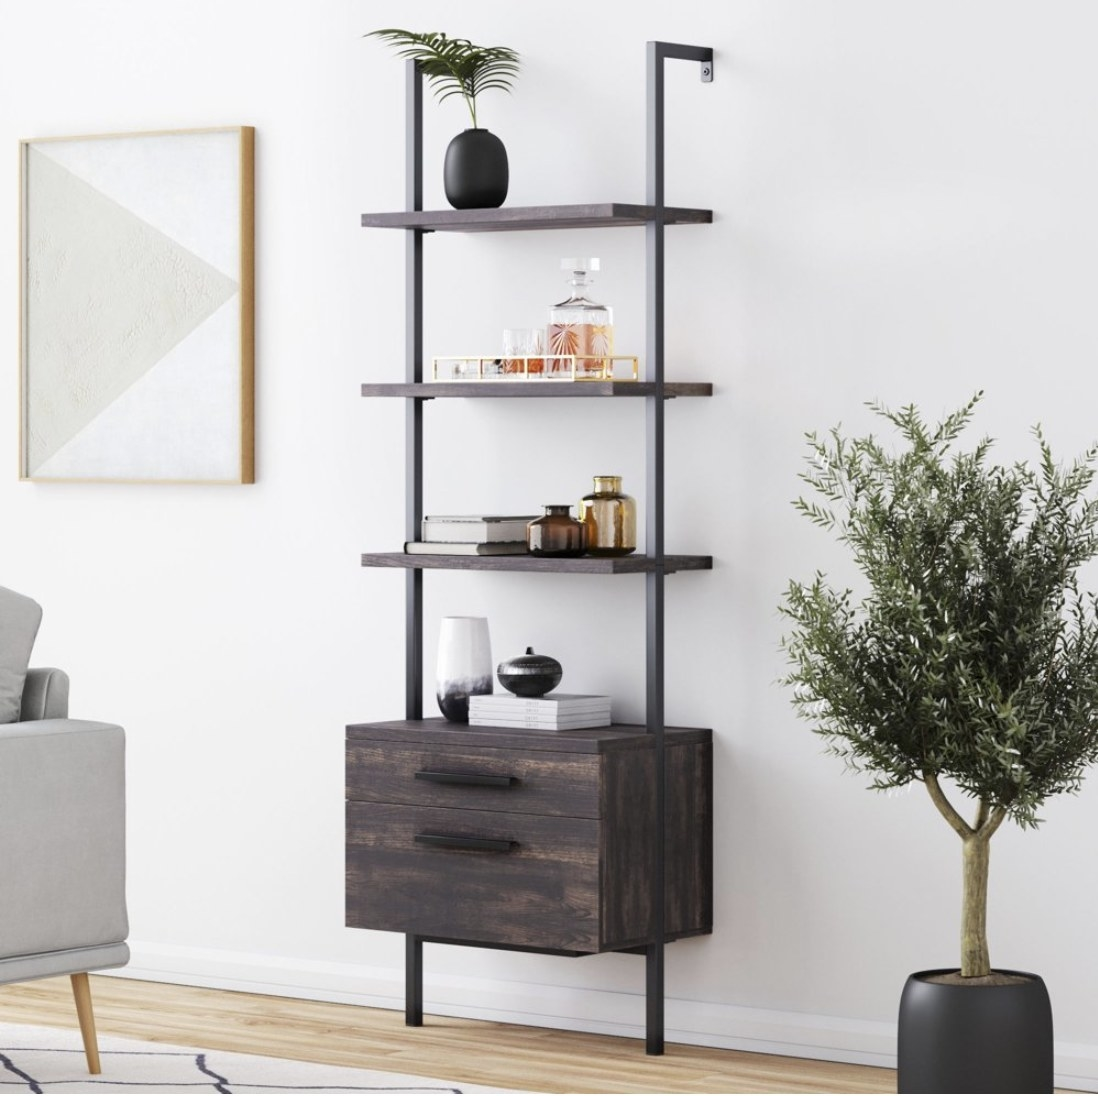 An industrial-style bookshelf with two drawers on the bottom and open shelves on the top mounted to the wall of a living room